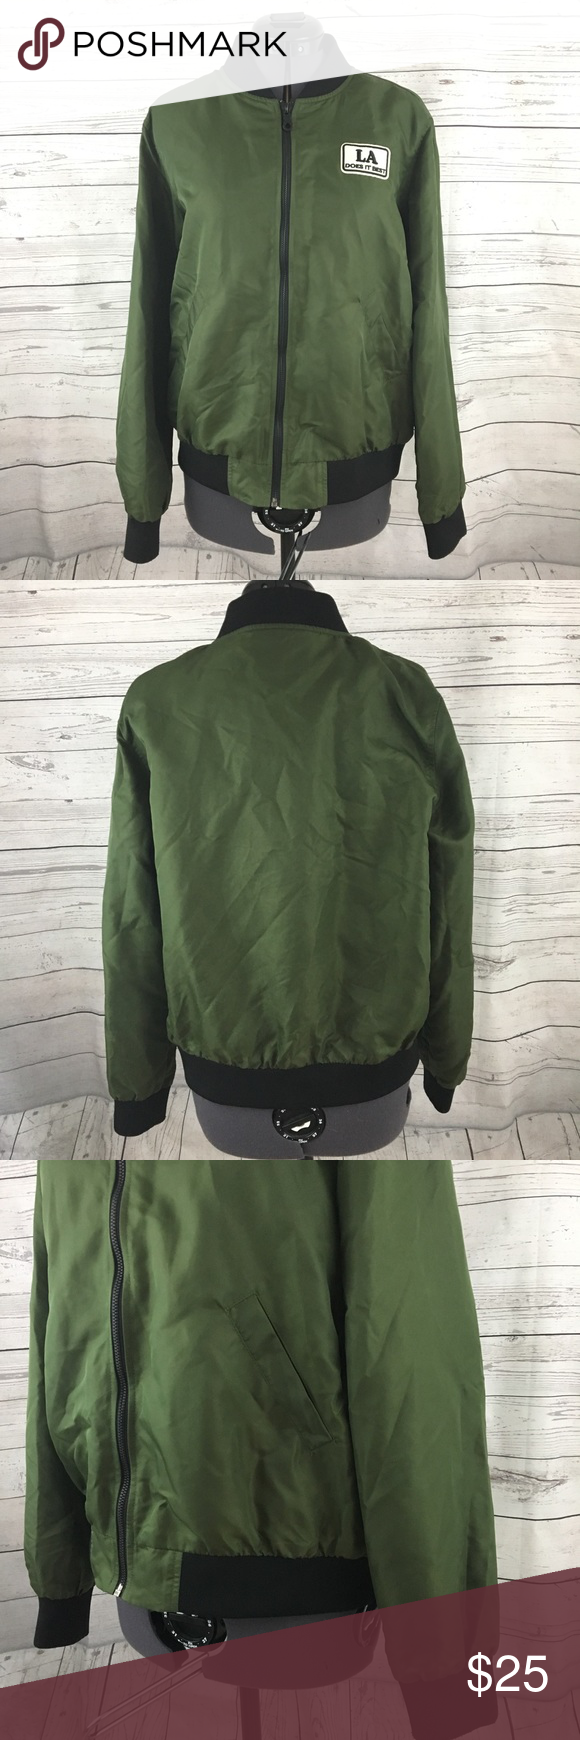 Forever 21 Army La Does It Best Bomber Jacket Bomber Jacket Forever 21 Bomber Jacket Jackets [ 1740 x 580 Pixel ]